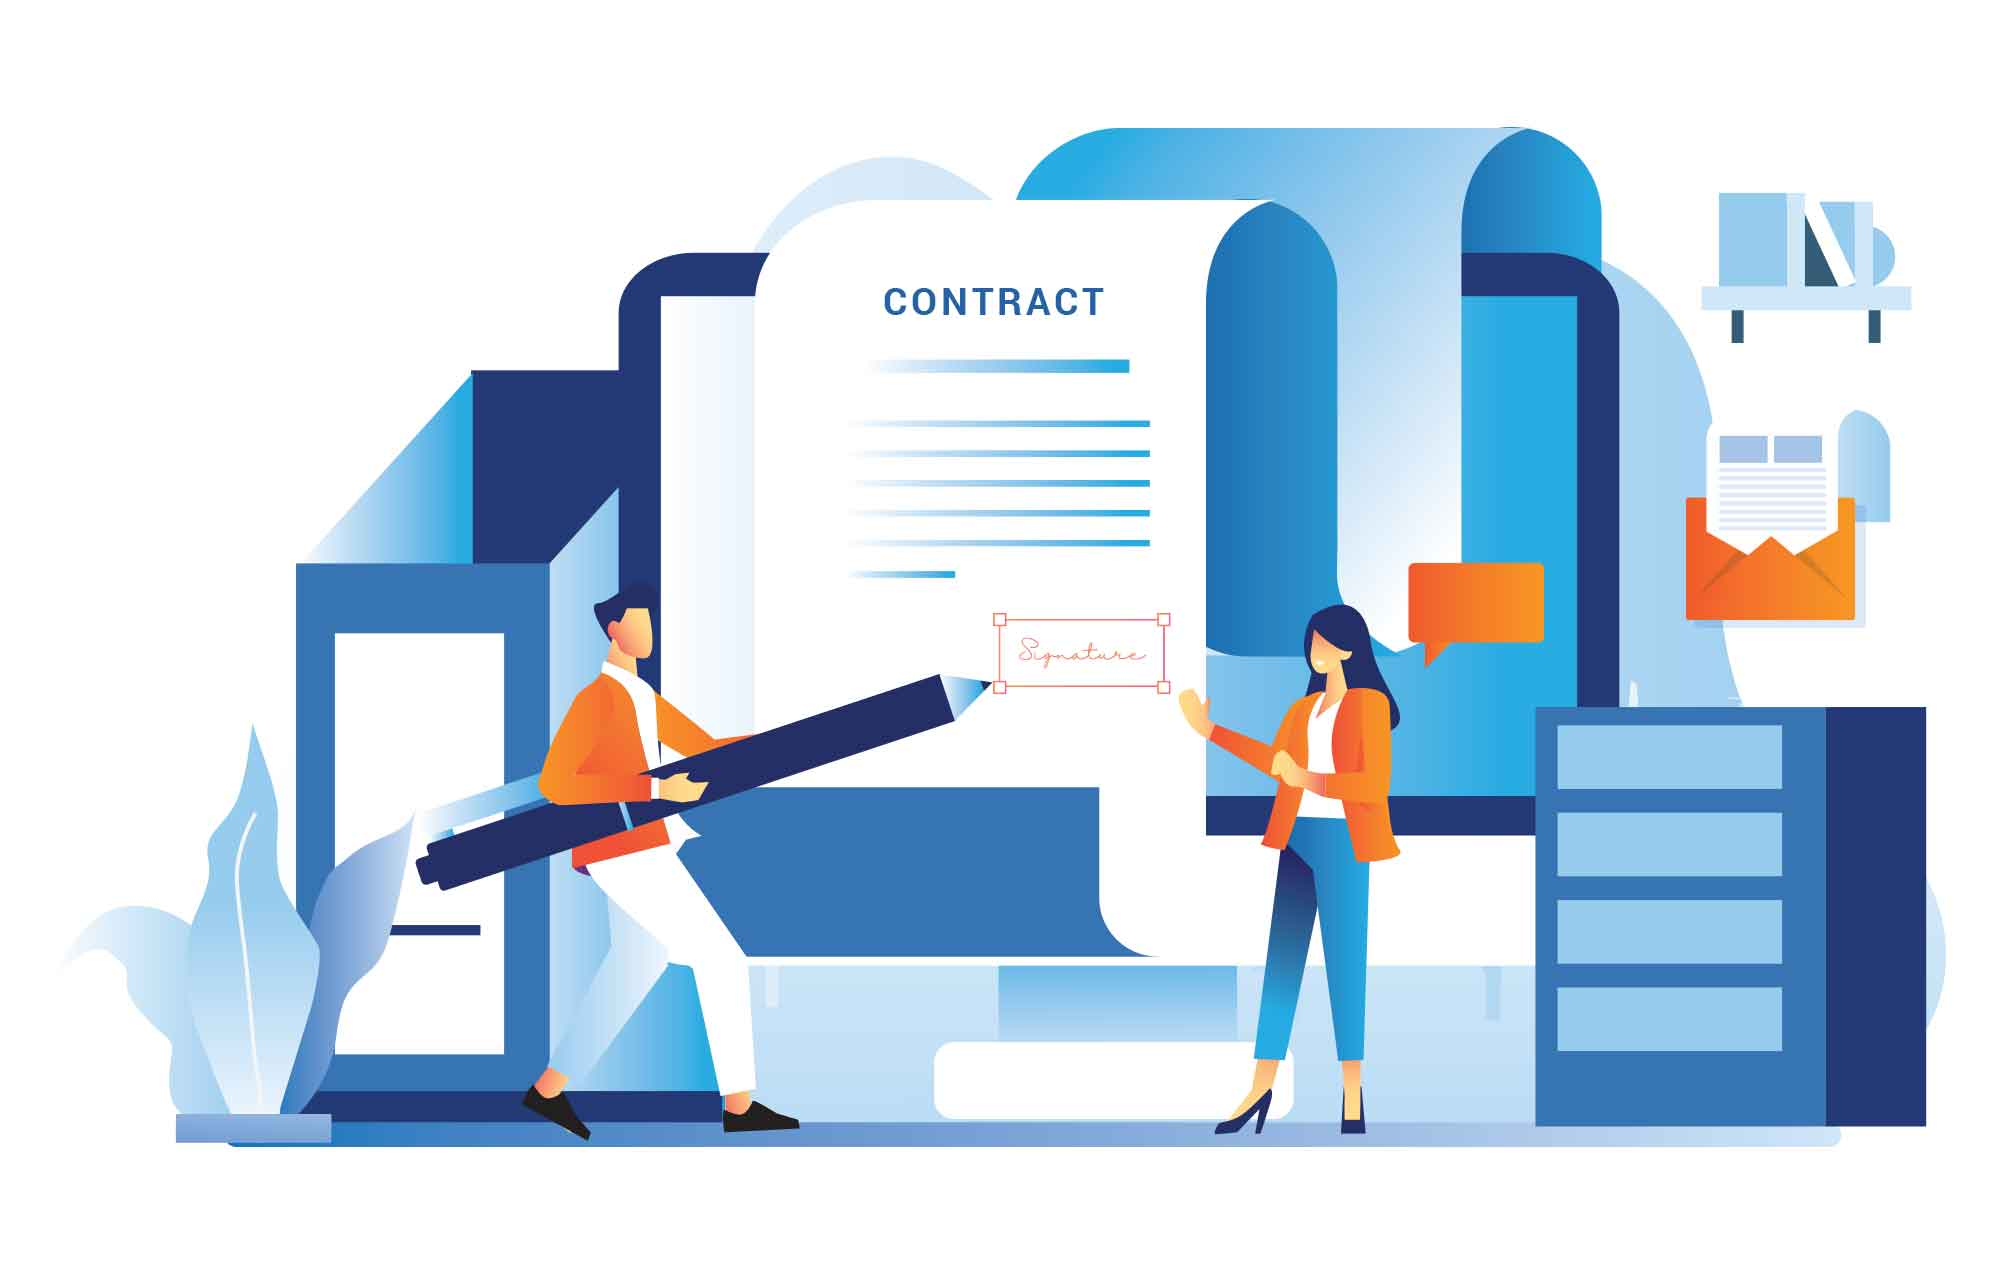 Signing Contract Illustration